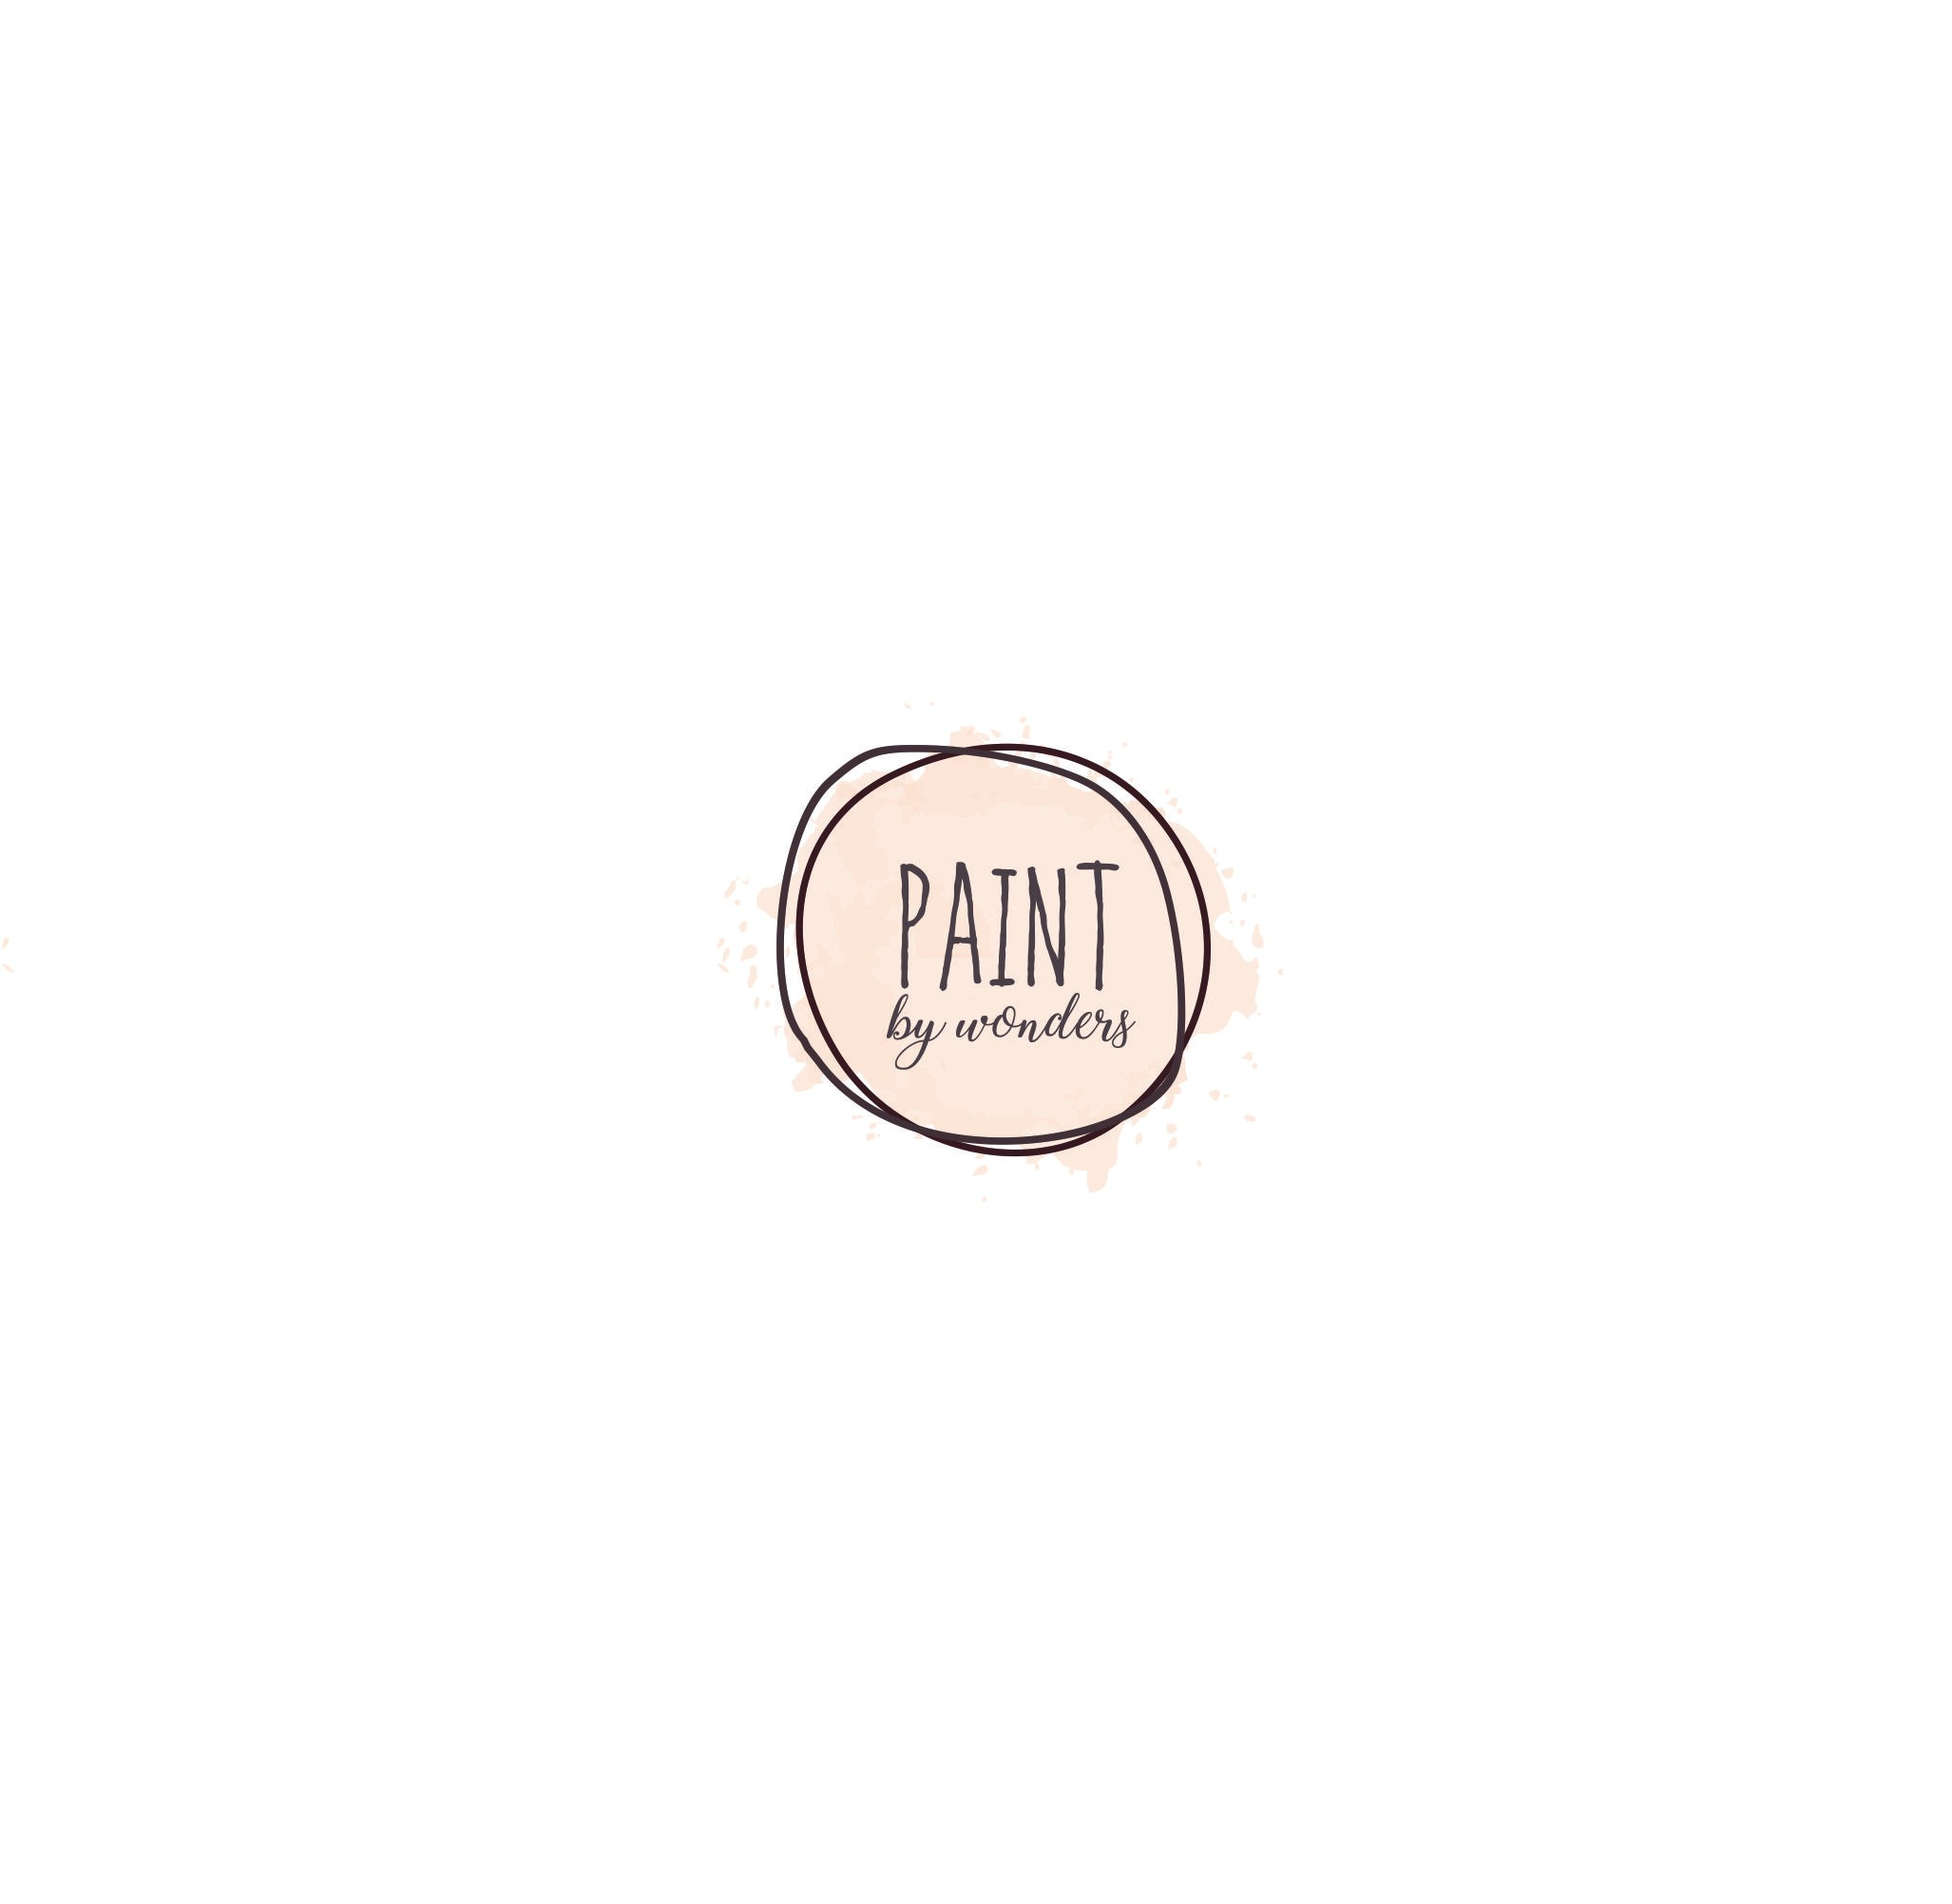 Create an eye catching logo for Paint by Wonders